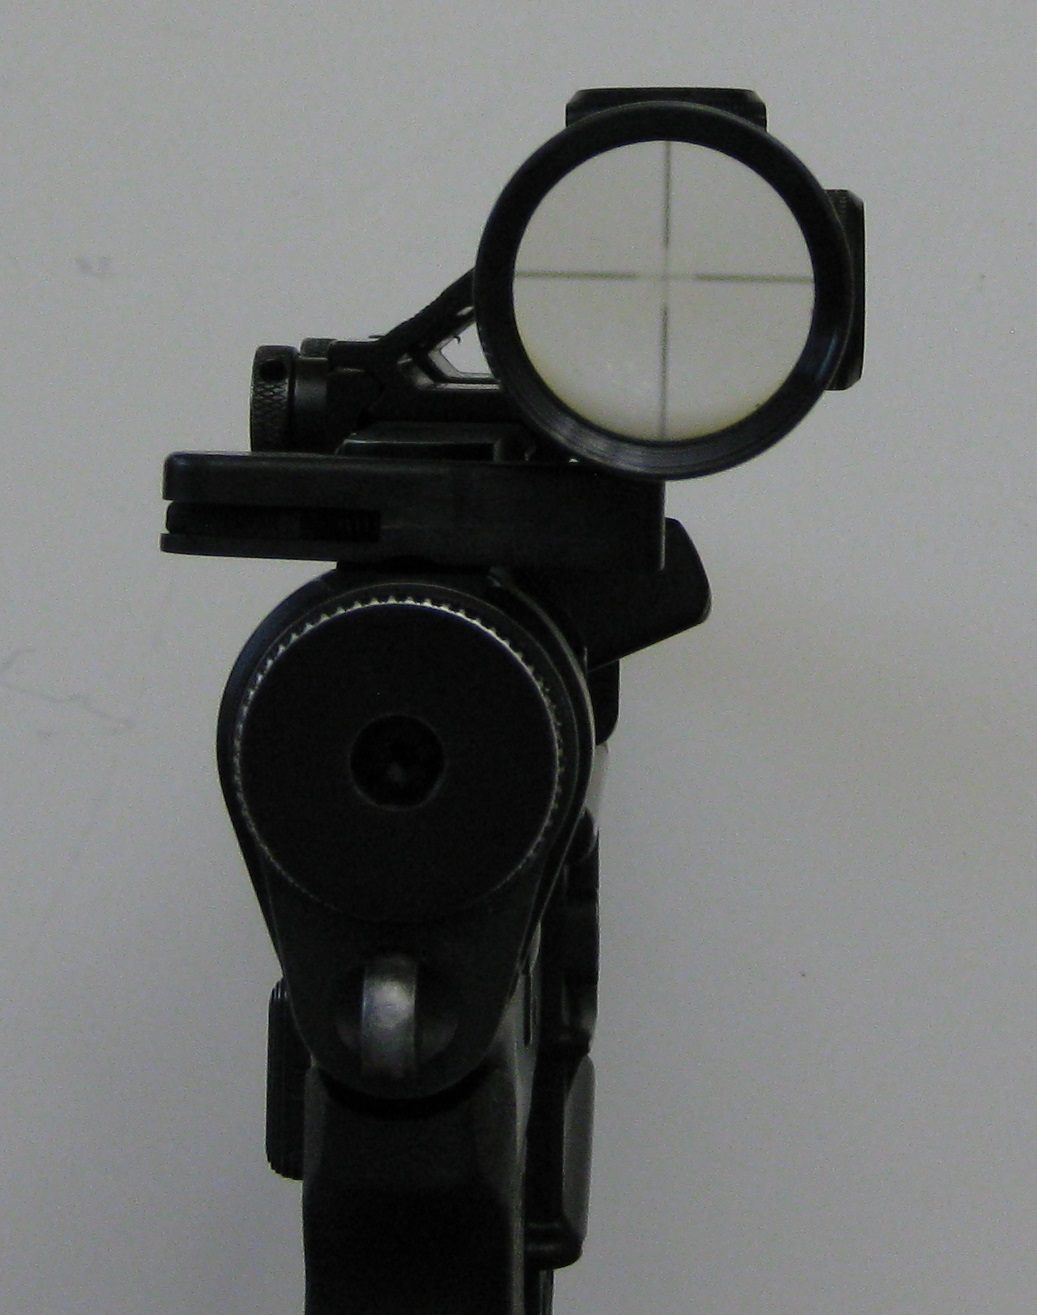 The offset scope mount may be sub-optimal for shooting accuracy, but it's key for the replica's aesthetic accuracy.